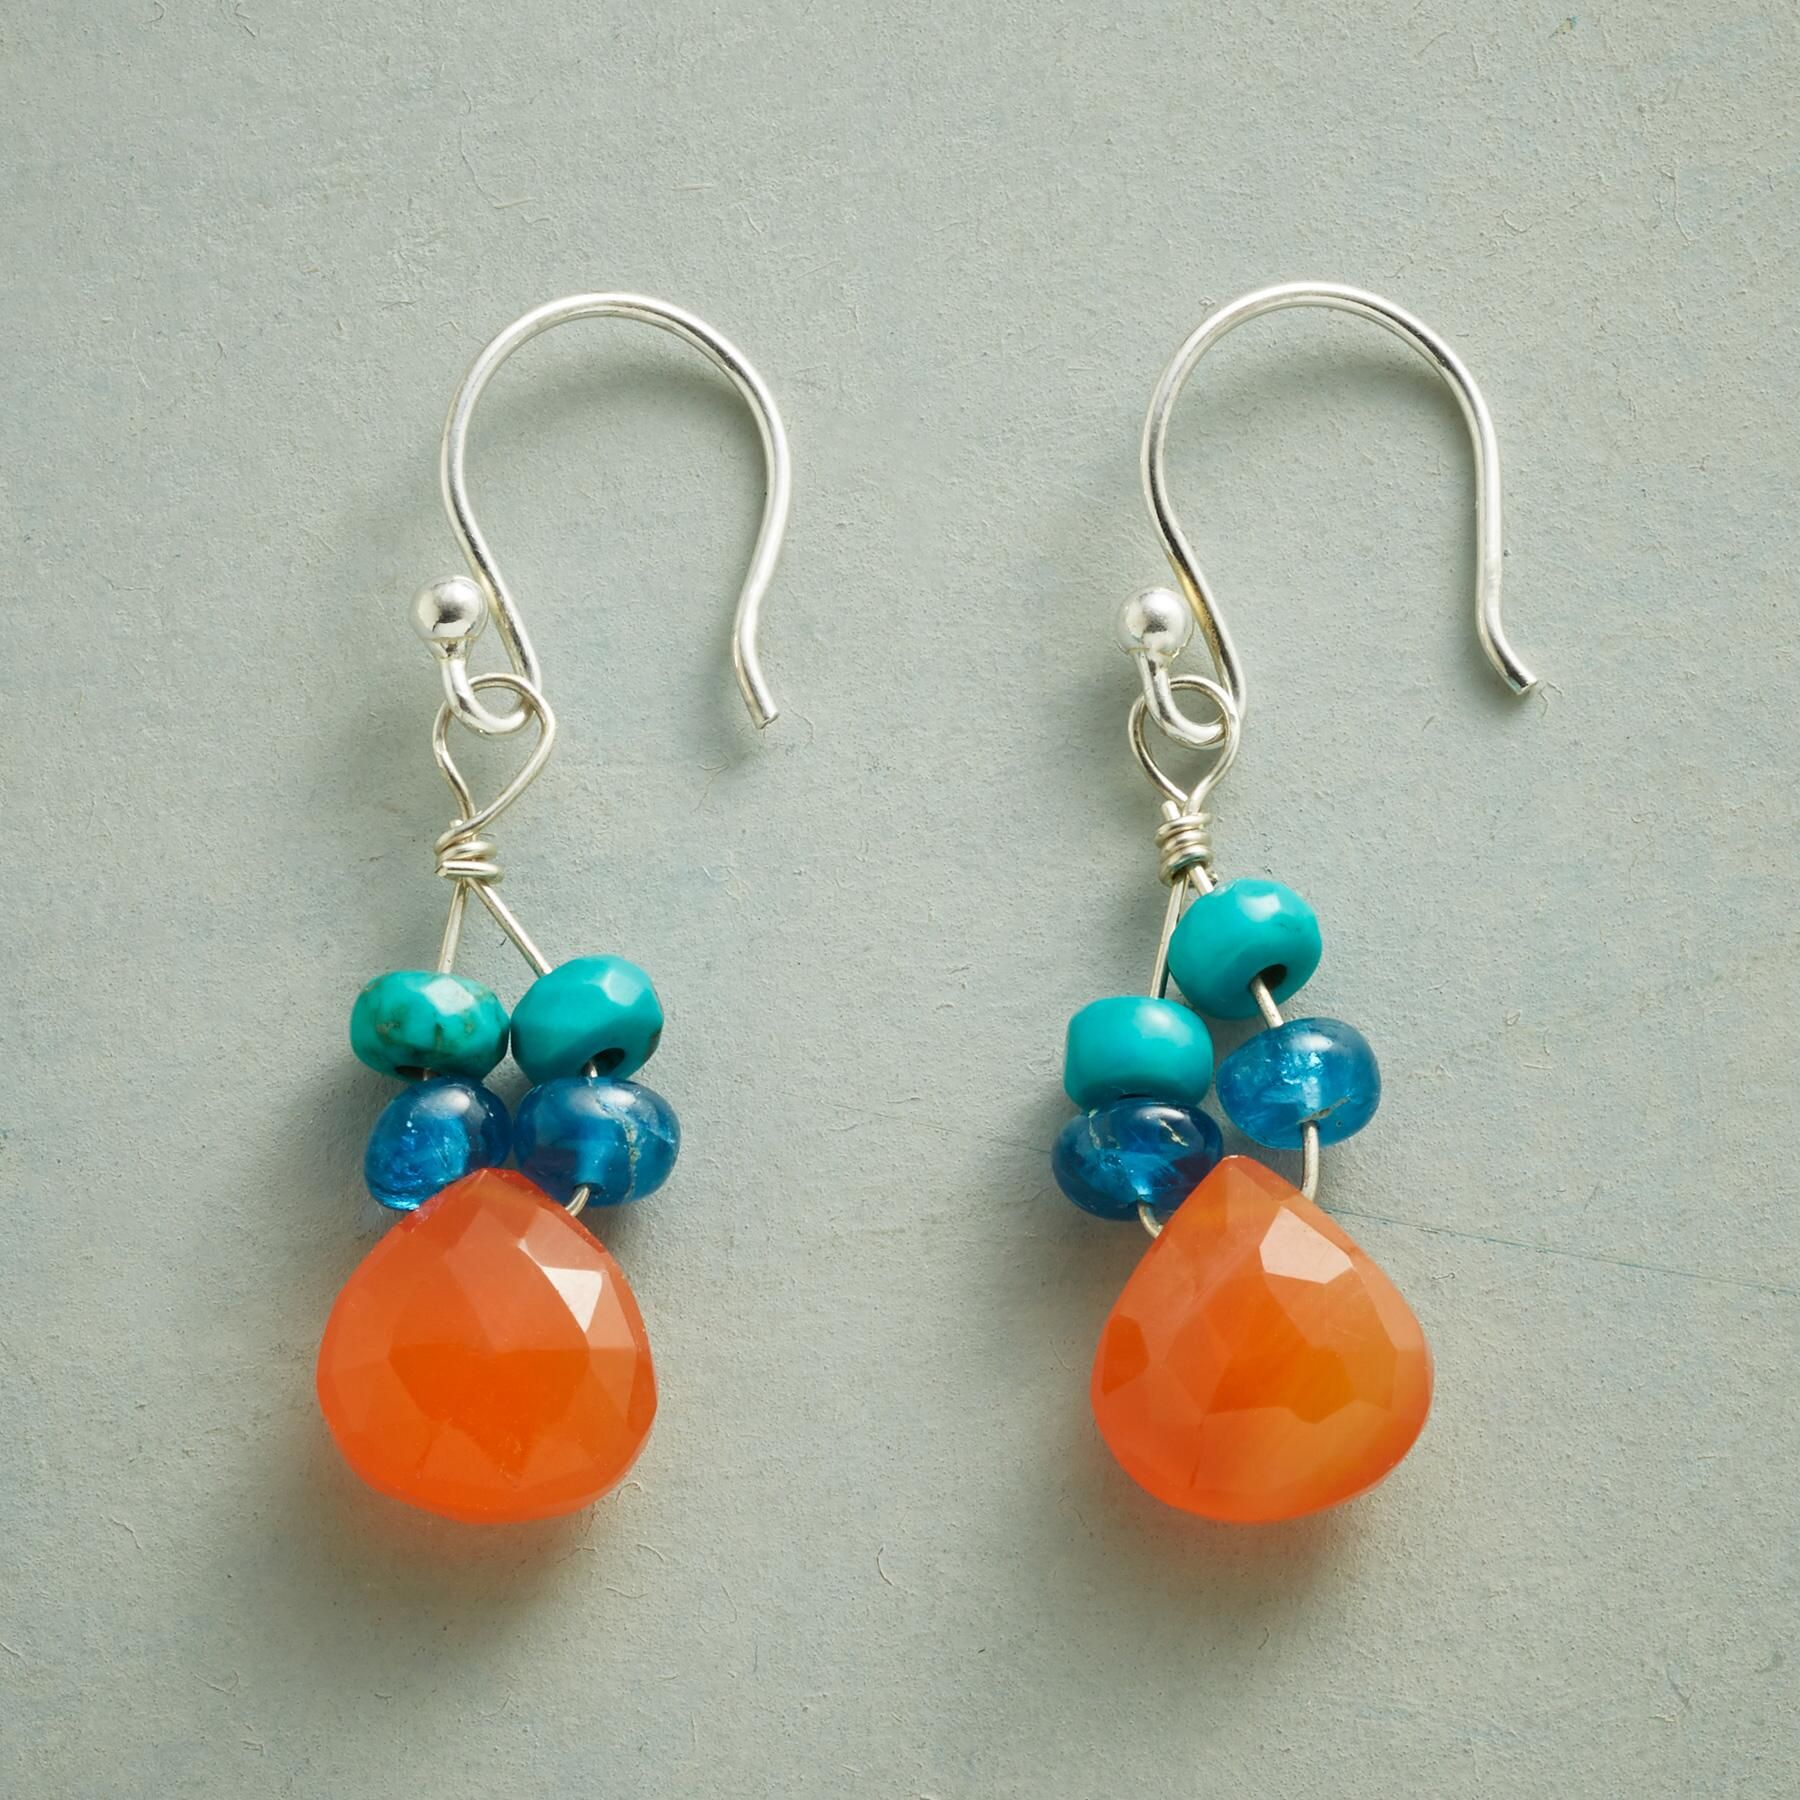 apatytam earrings zavushnitsy en product honar with z clothing apatite